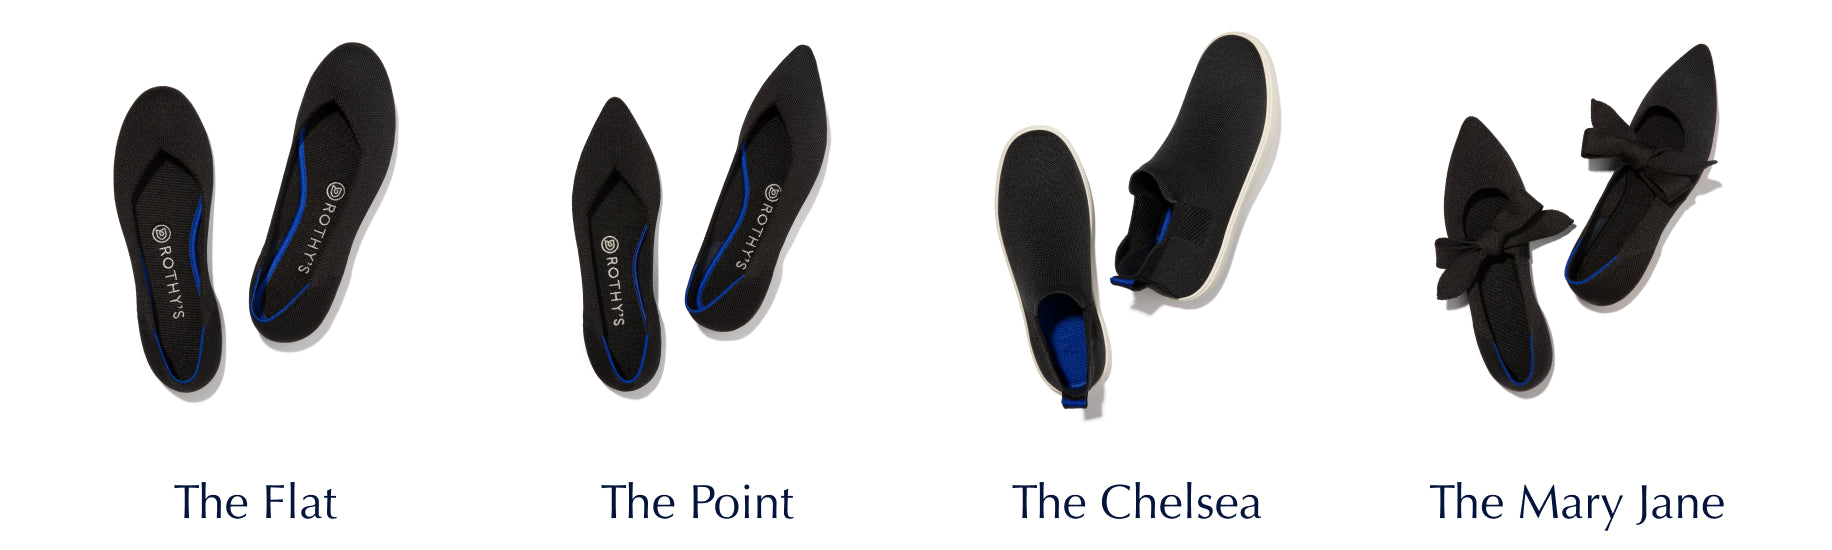 Lineup of The Flat, The Point, The Chelsea and The Mary Jane in Black, with silhouette names under.